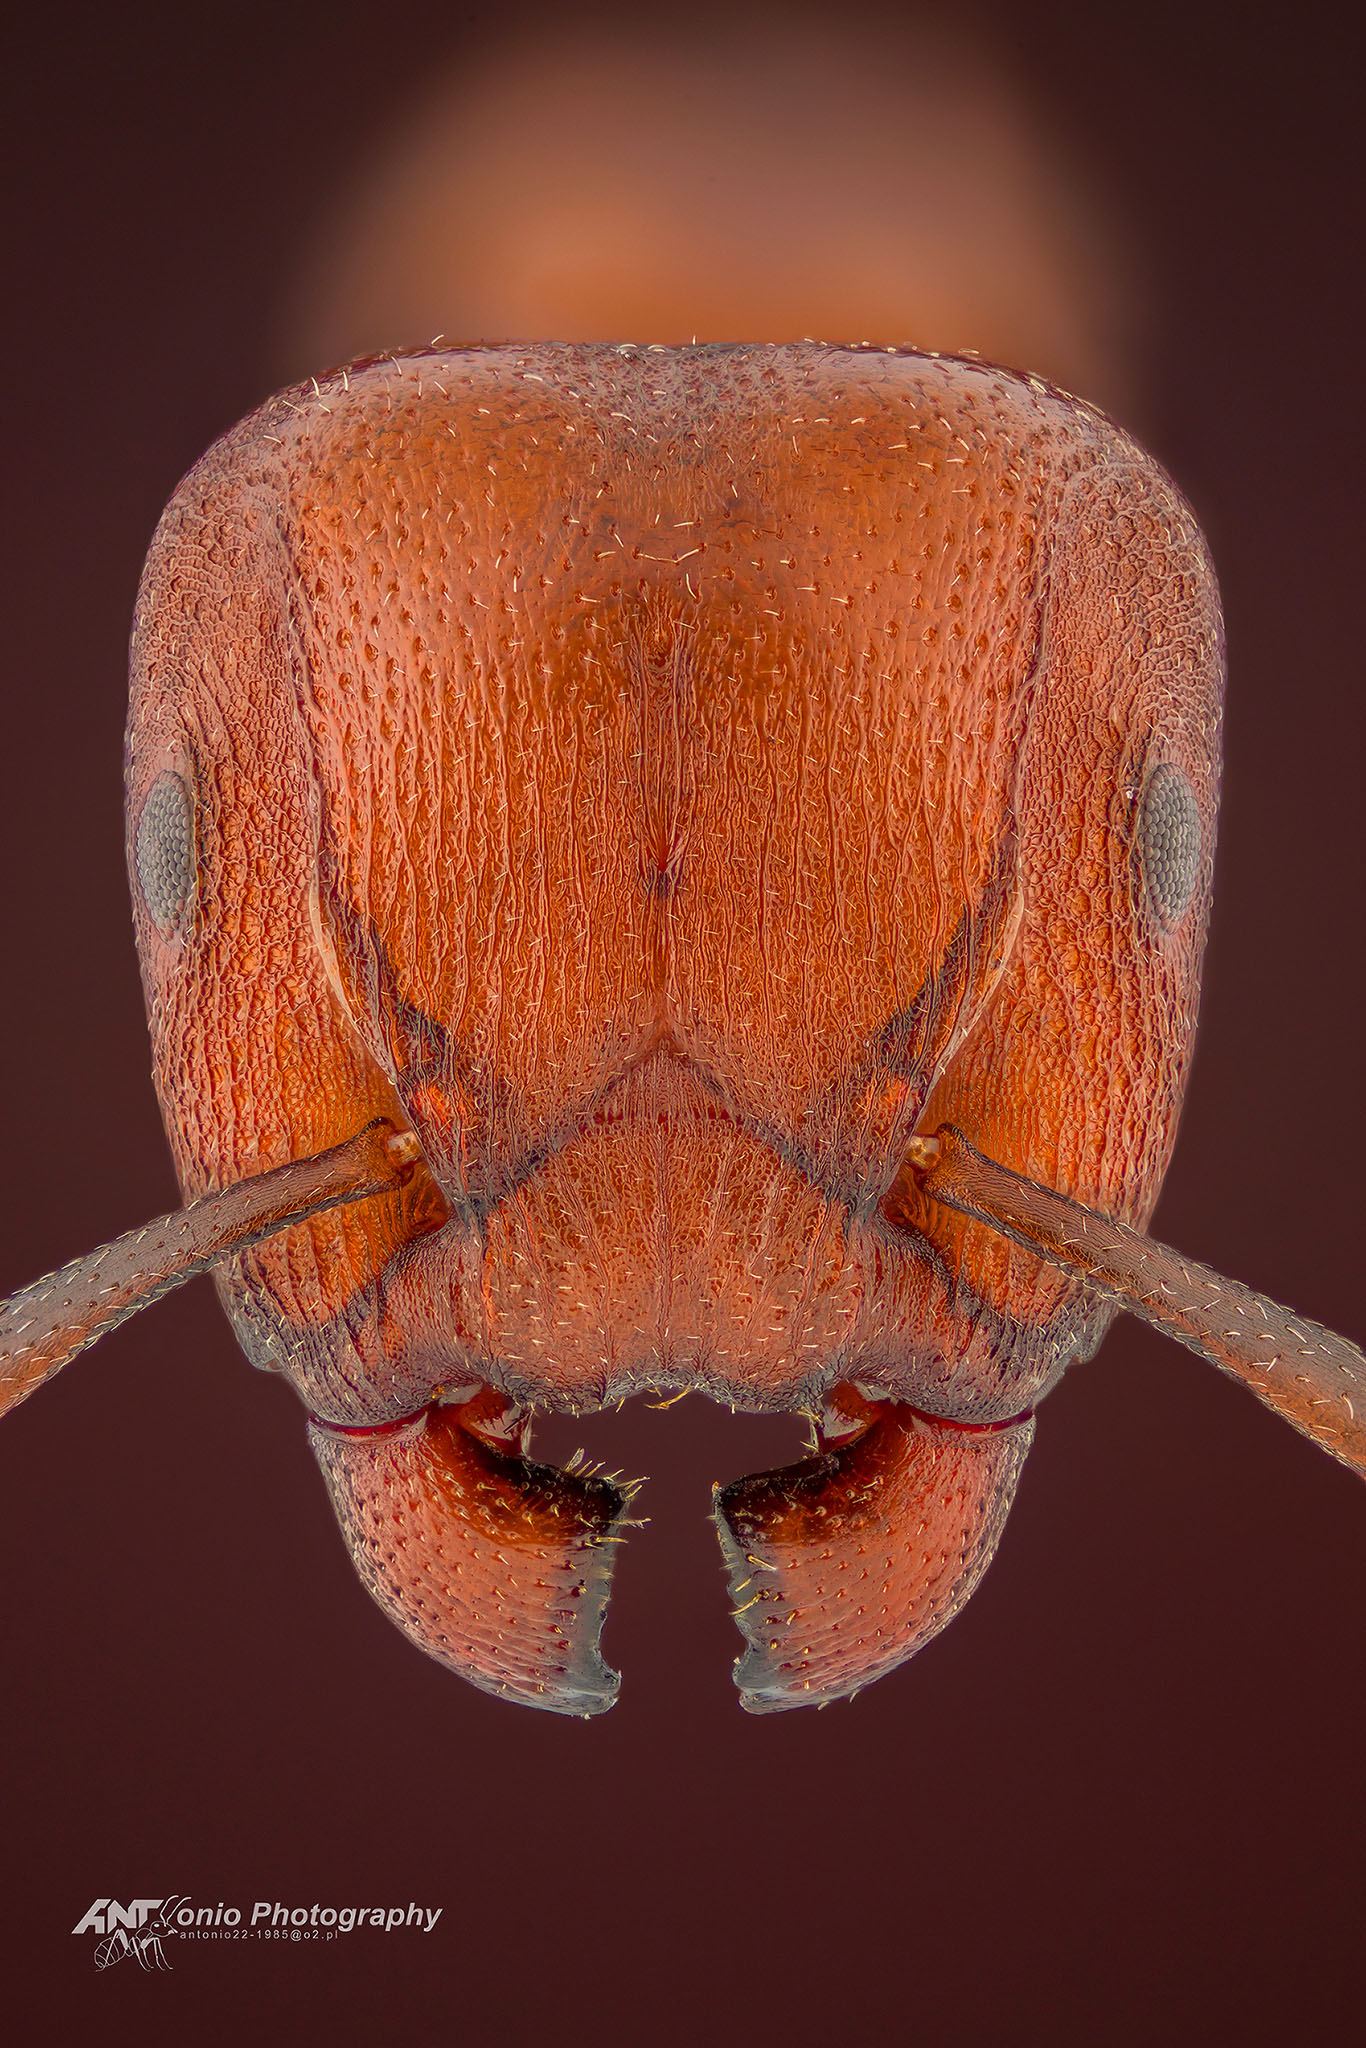 Ant Atopomyrmex mocquerysi from Mozambique